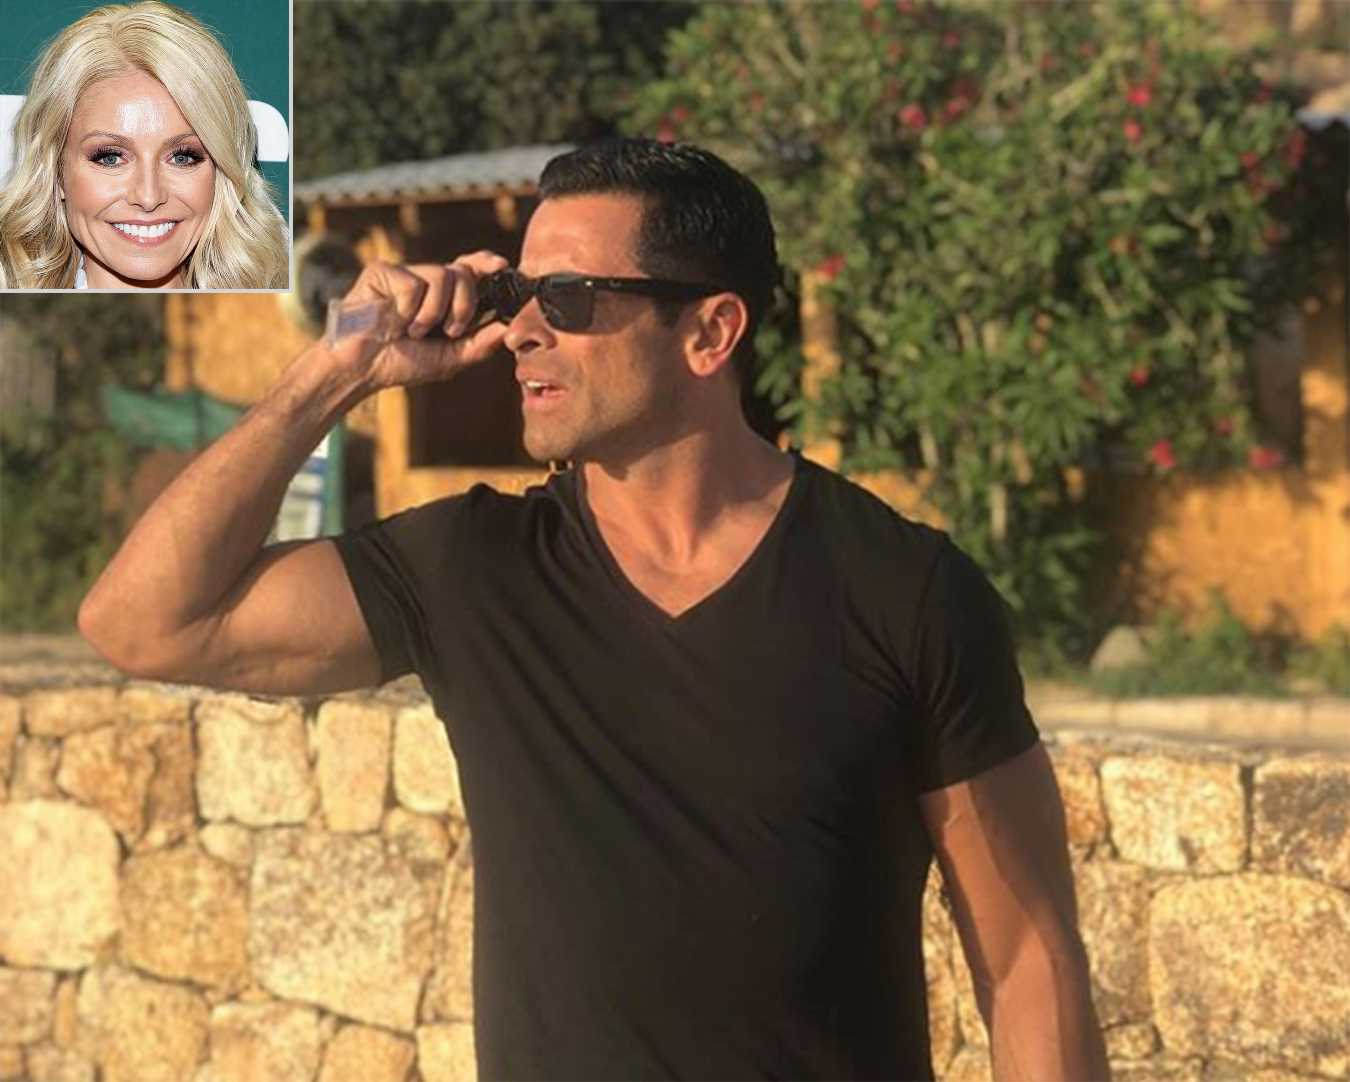 Kelly Ripa Shares Throwback Photo of 'Daddy' Mark Consuelos in Corsica 'Lookin for Love'